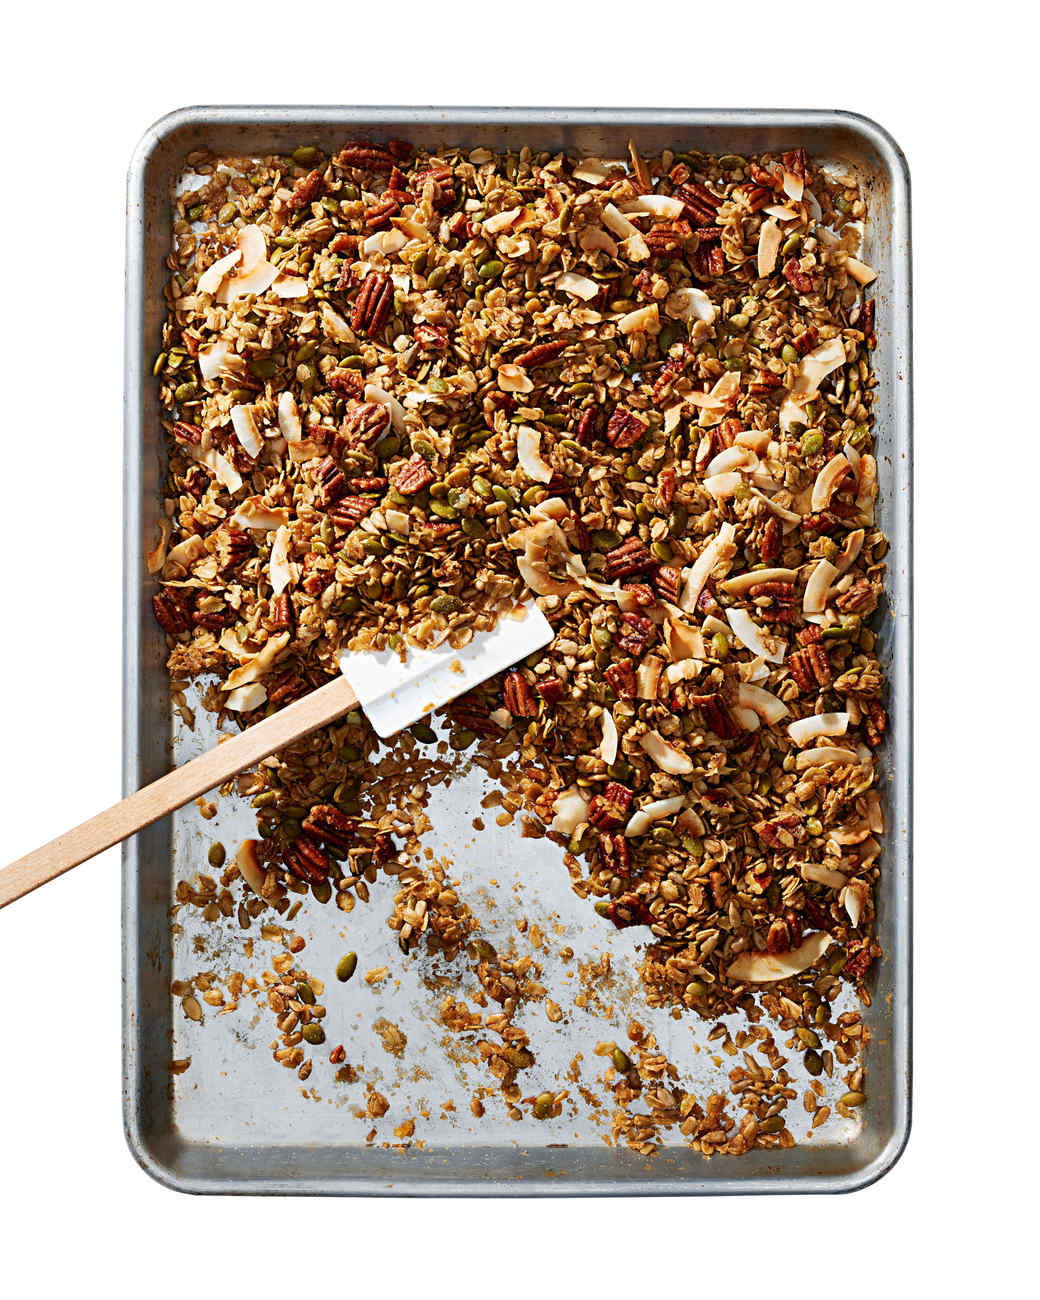 toasted-coconut-granola-102843273.jpg